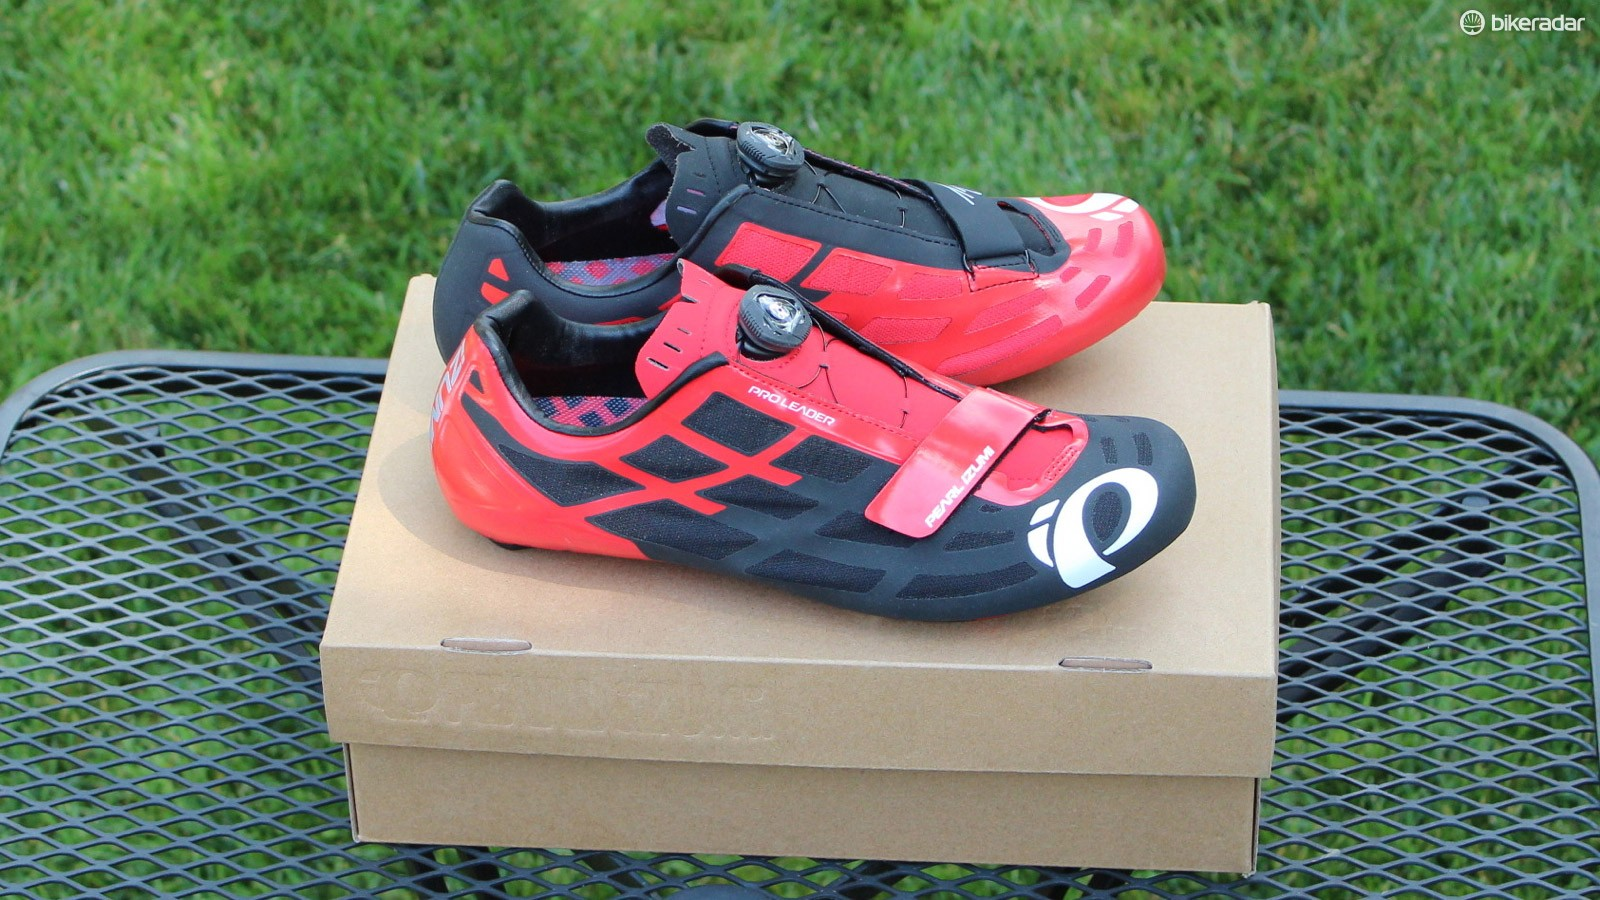 Our test 45.5 size weighed 268g per shoe